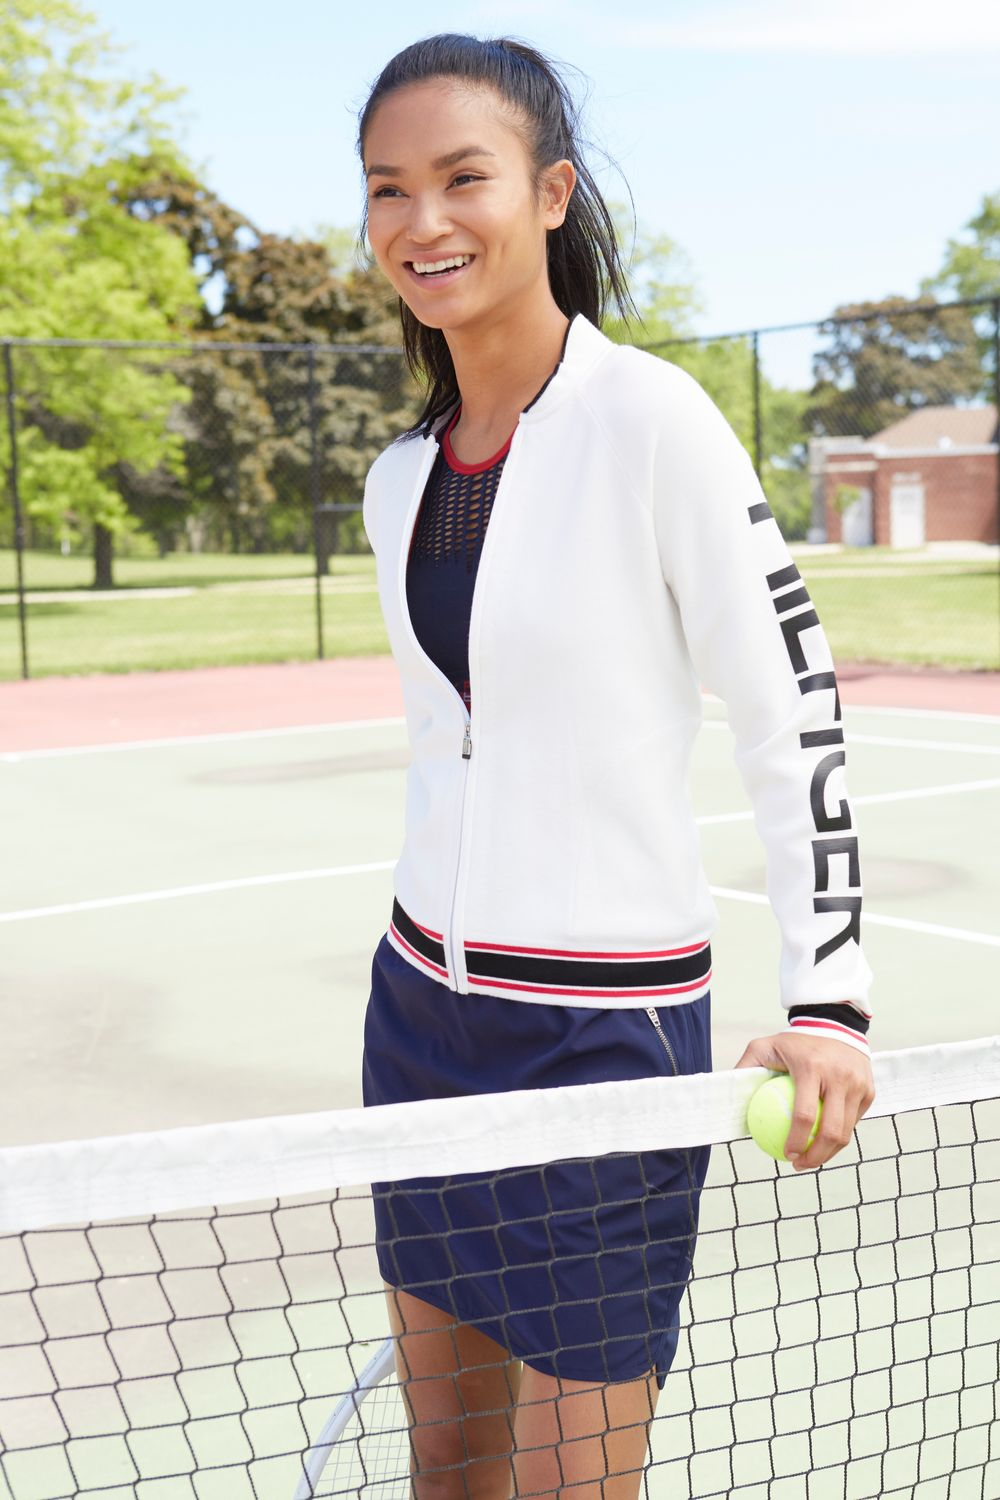 tennis single girl 4.jpg